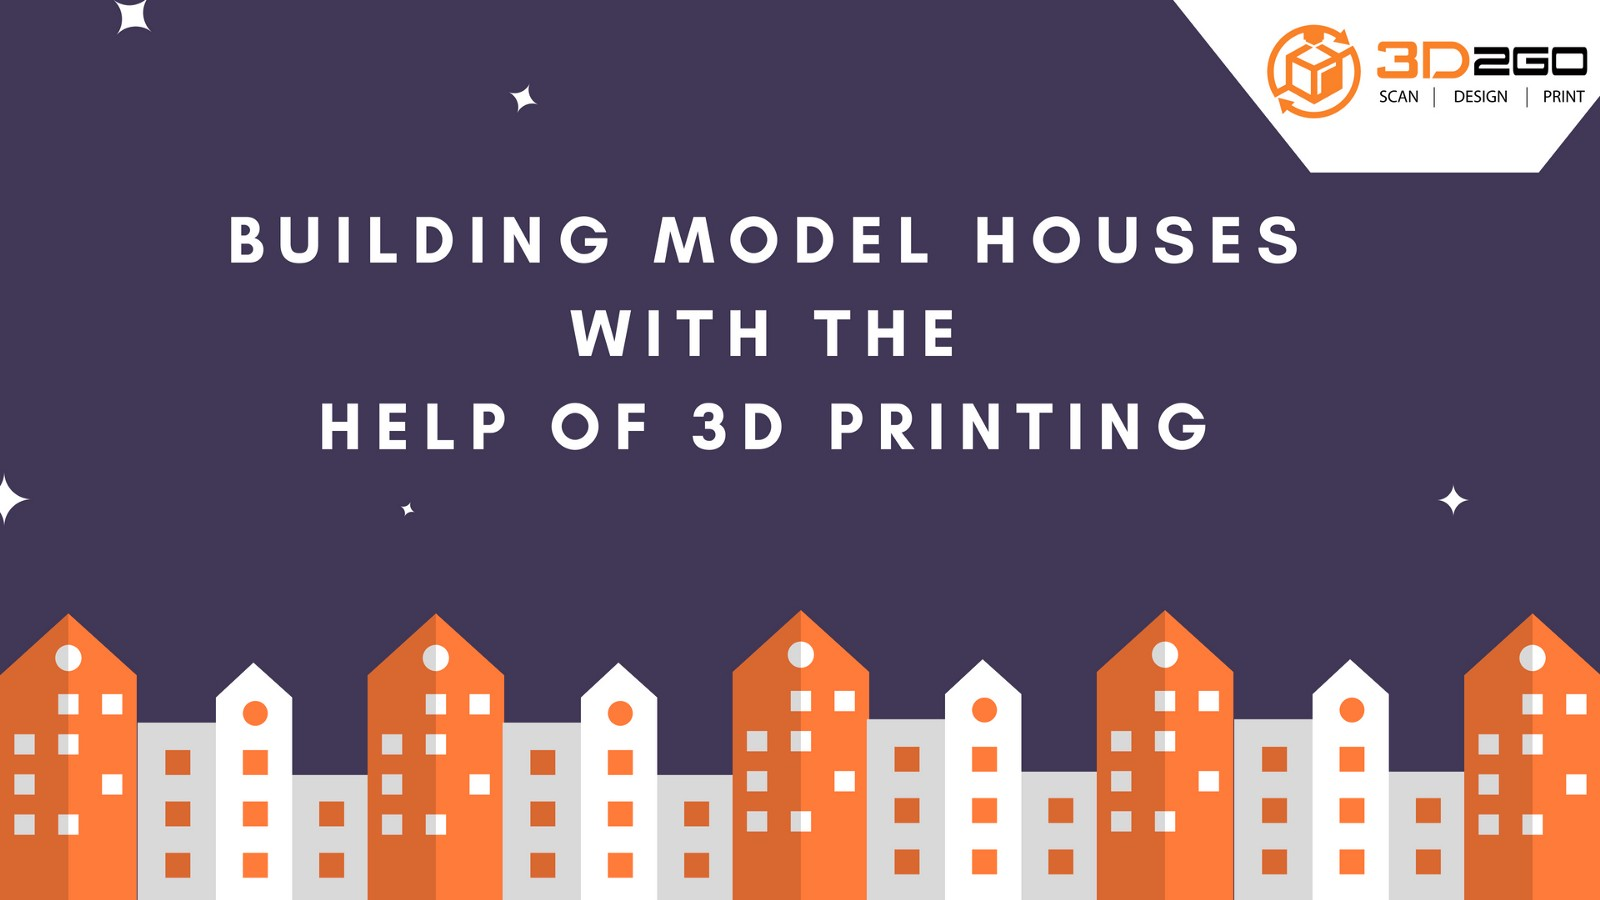 Building Model Houses With 3D Printing